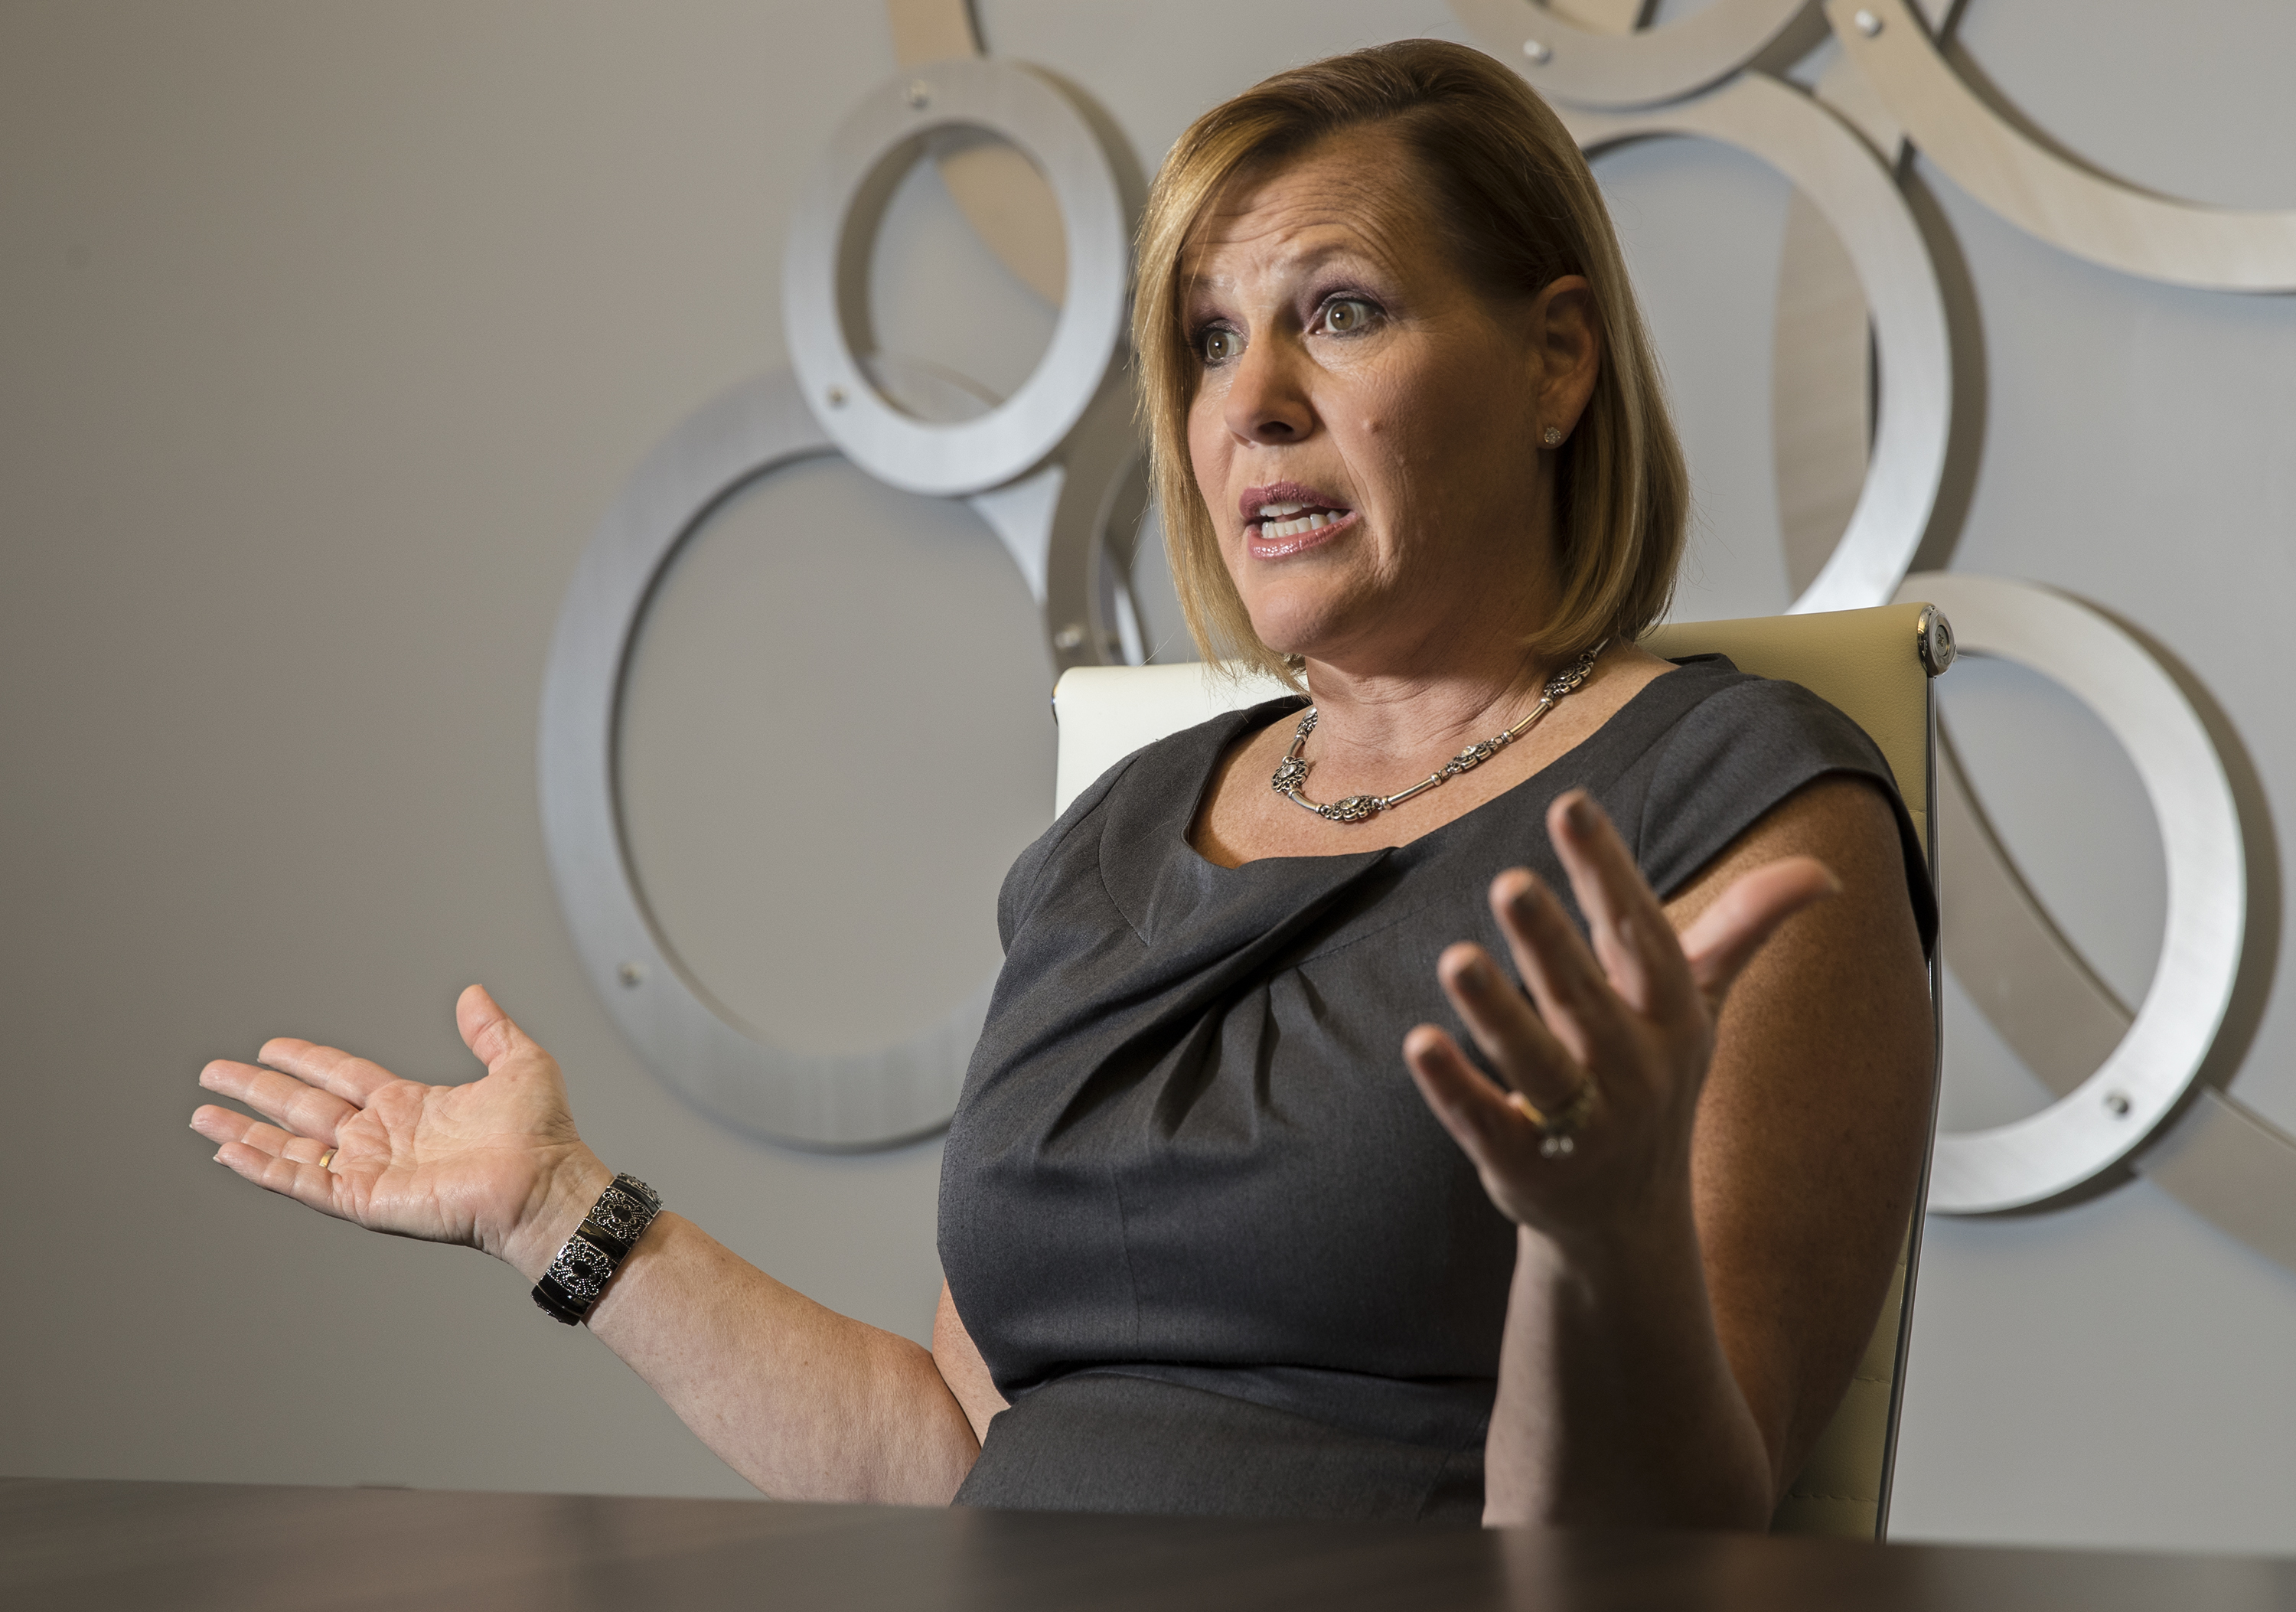 Nutrisystem CEO Dawn Zier talks about where her company is heading. Since she became CEO in November 2012 the company´s stock has grown seven-fold and it acquired South Beach Diet. MICHAEL BRYANT / Staff Photographer